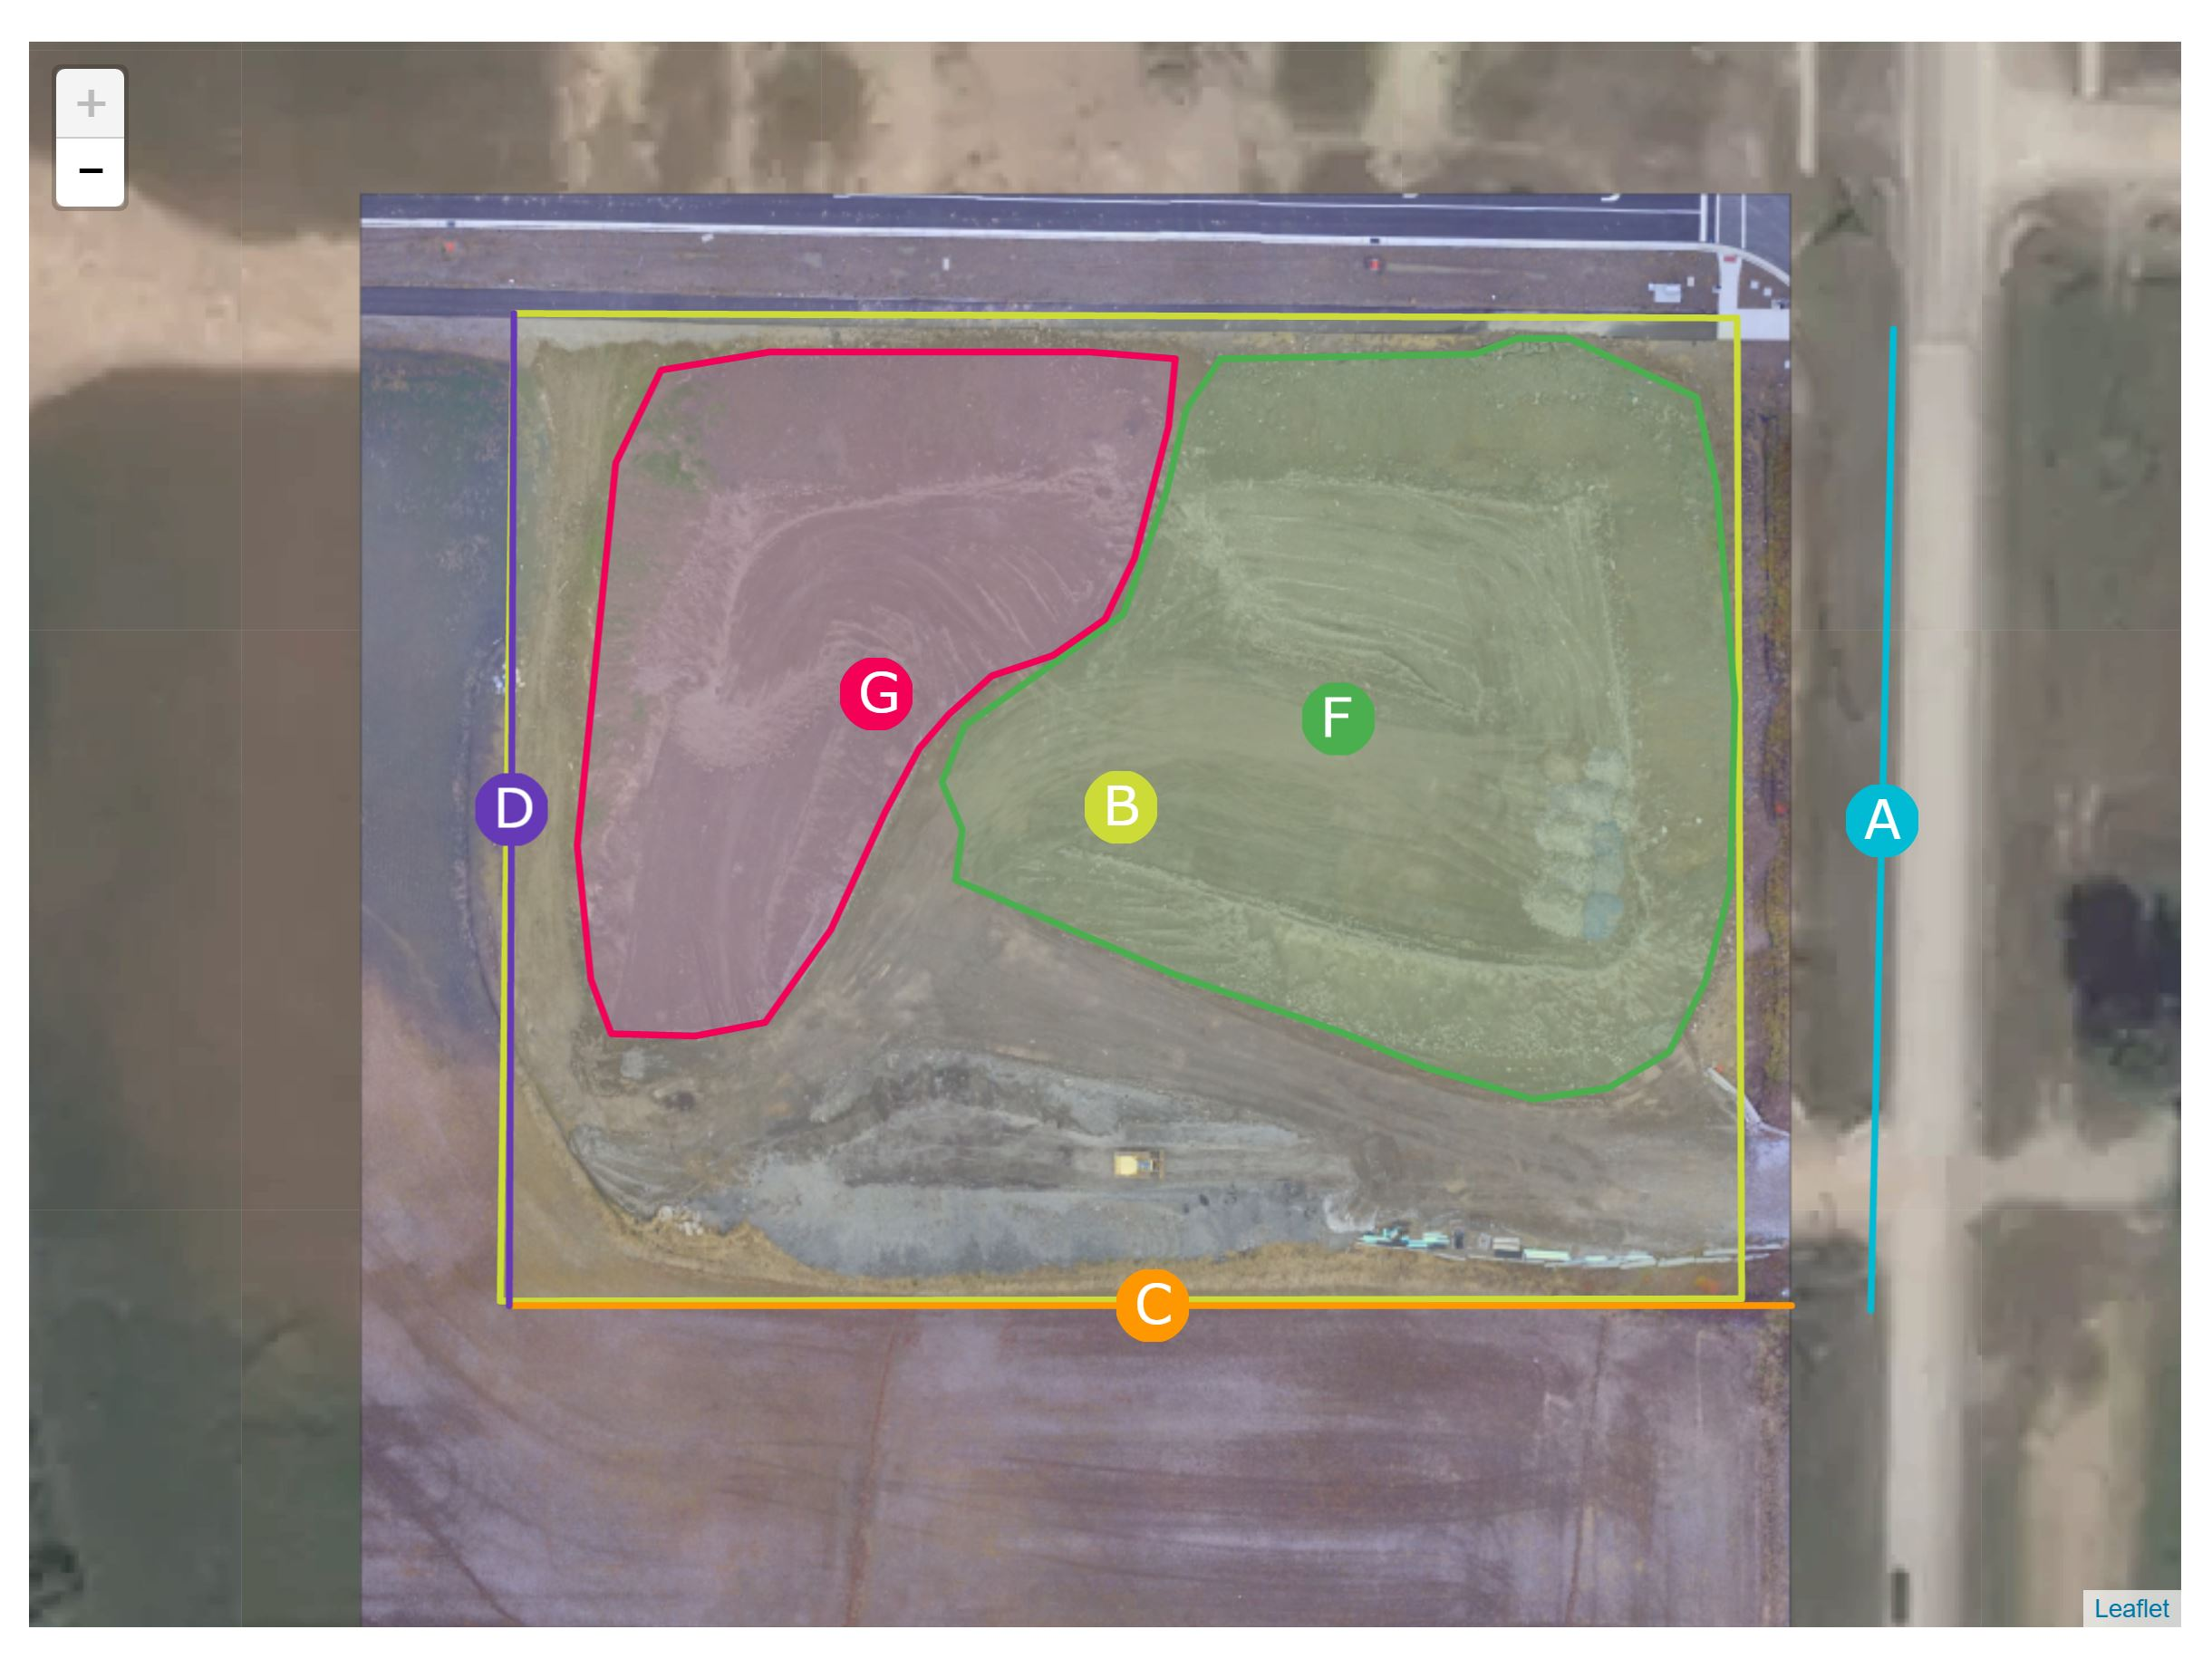 Measurement Data including Length, Cut/Fill, Slope,Square Footage, and Volume from aerial data captured!